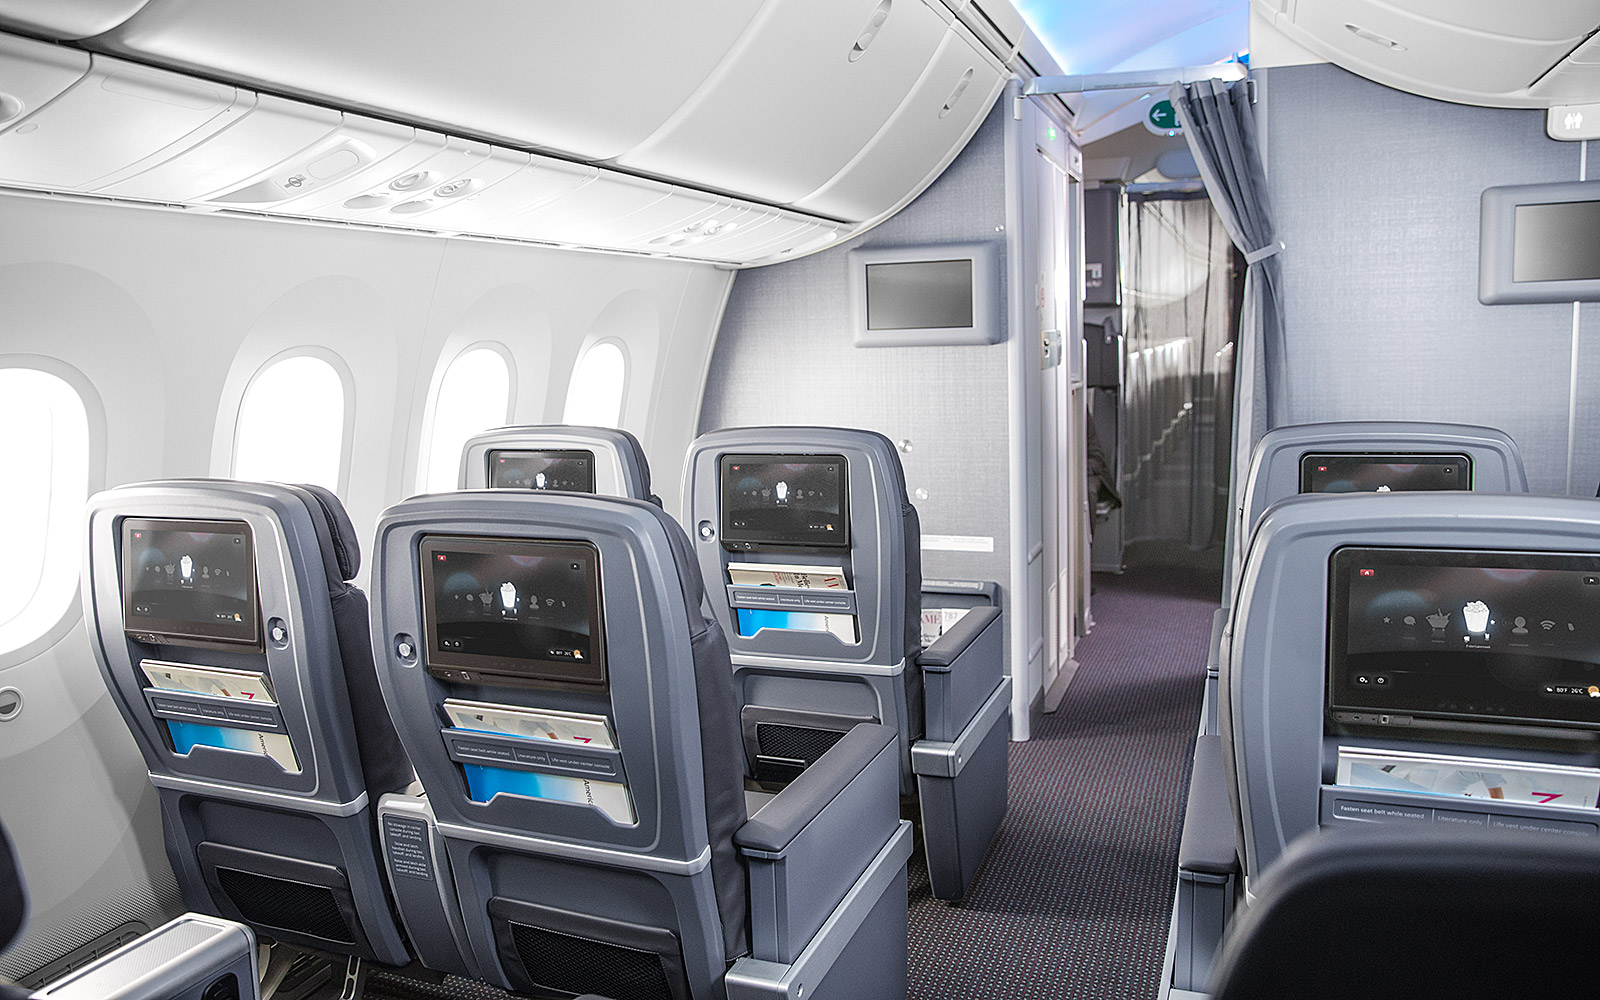 How to Get the Most Out of Airlines' 'Premium Economy'